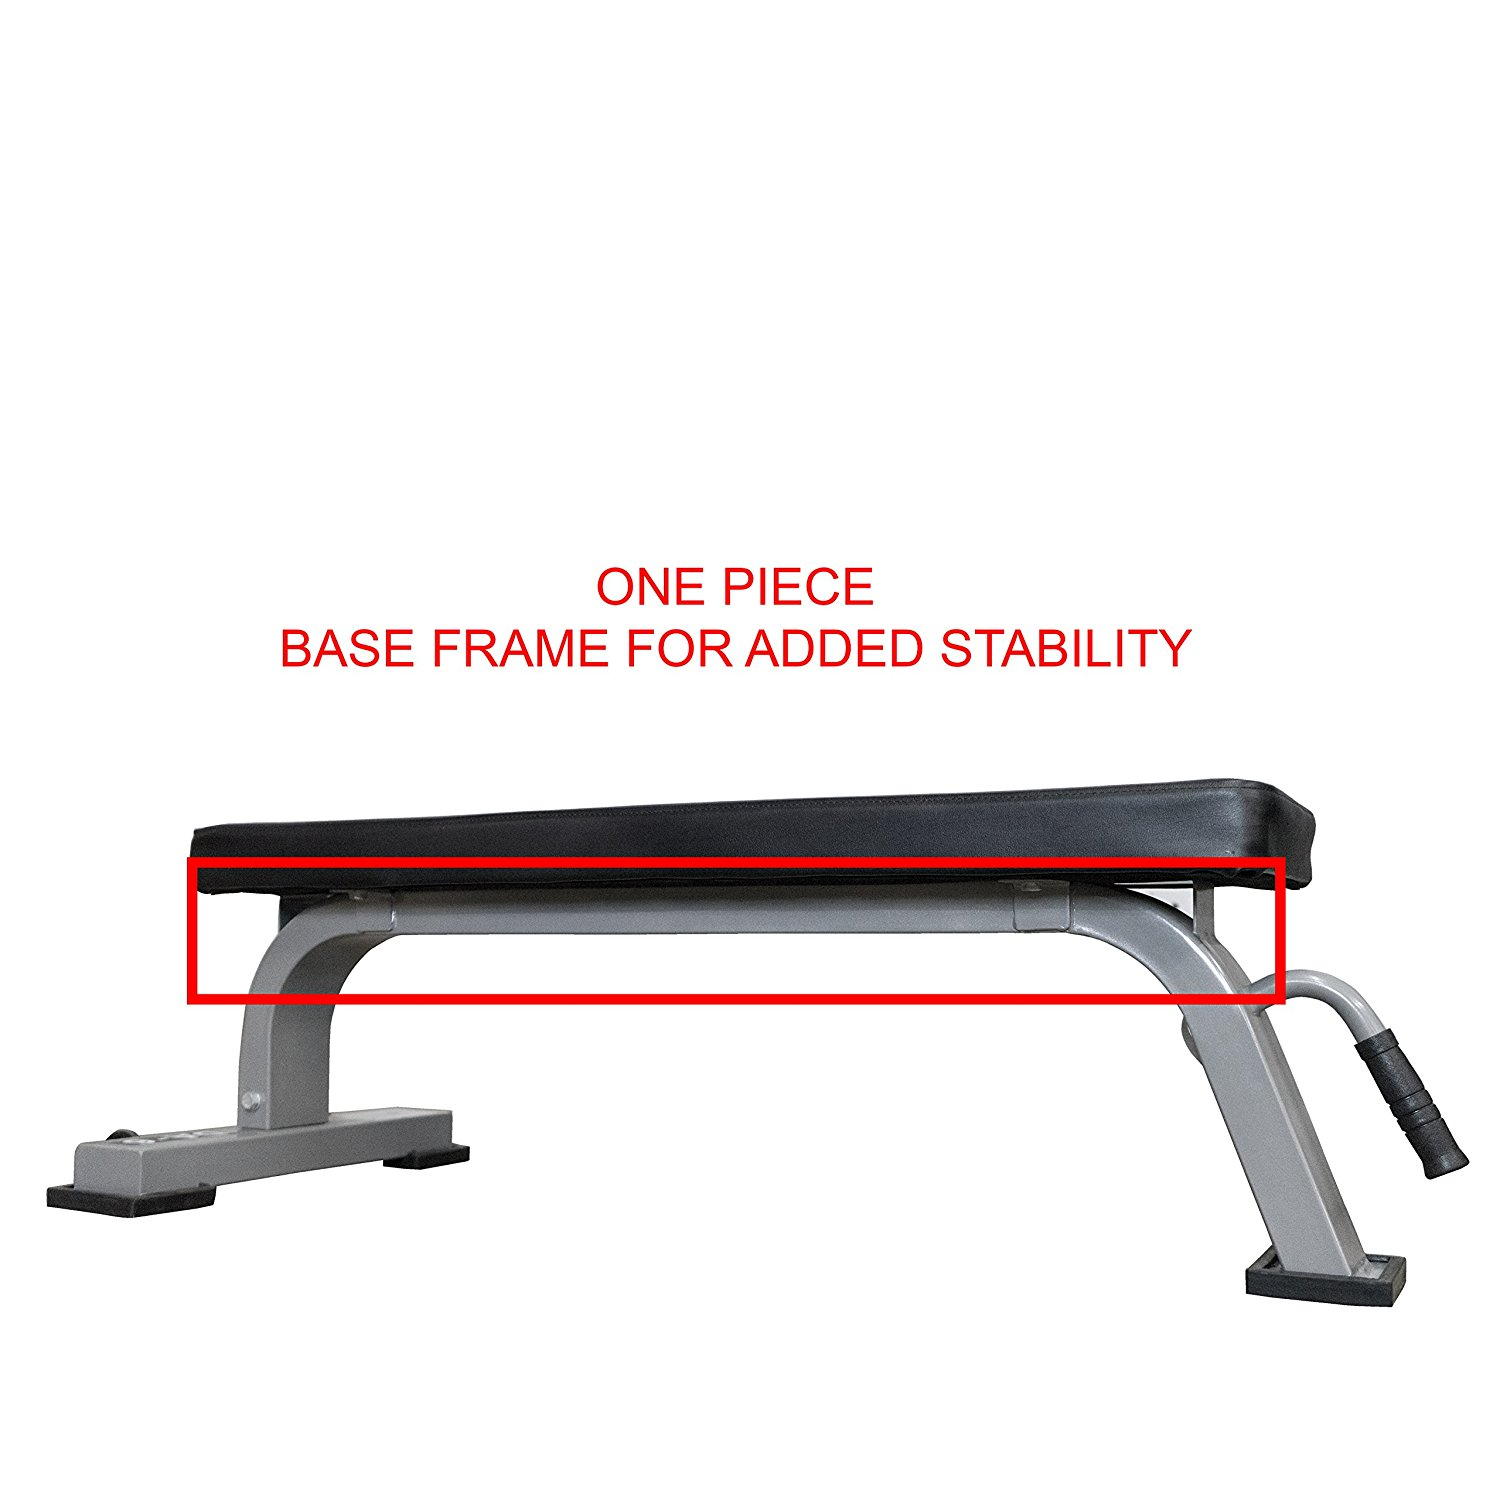 life hammer pro leg select adjustable strength de style bench fitness frame upholstery color